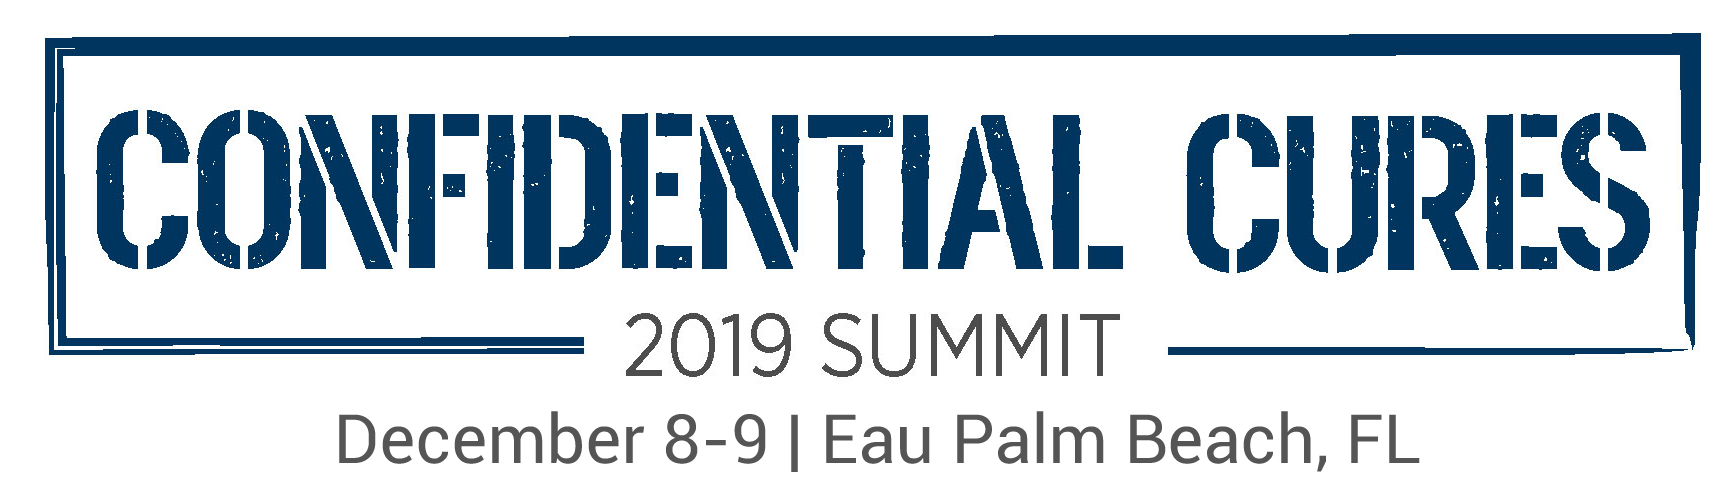 Confidential Cures Summit 2019